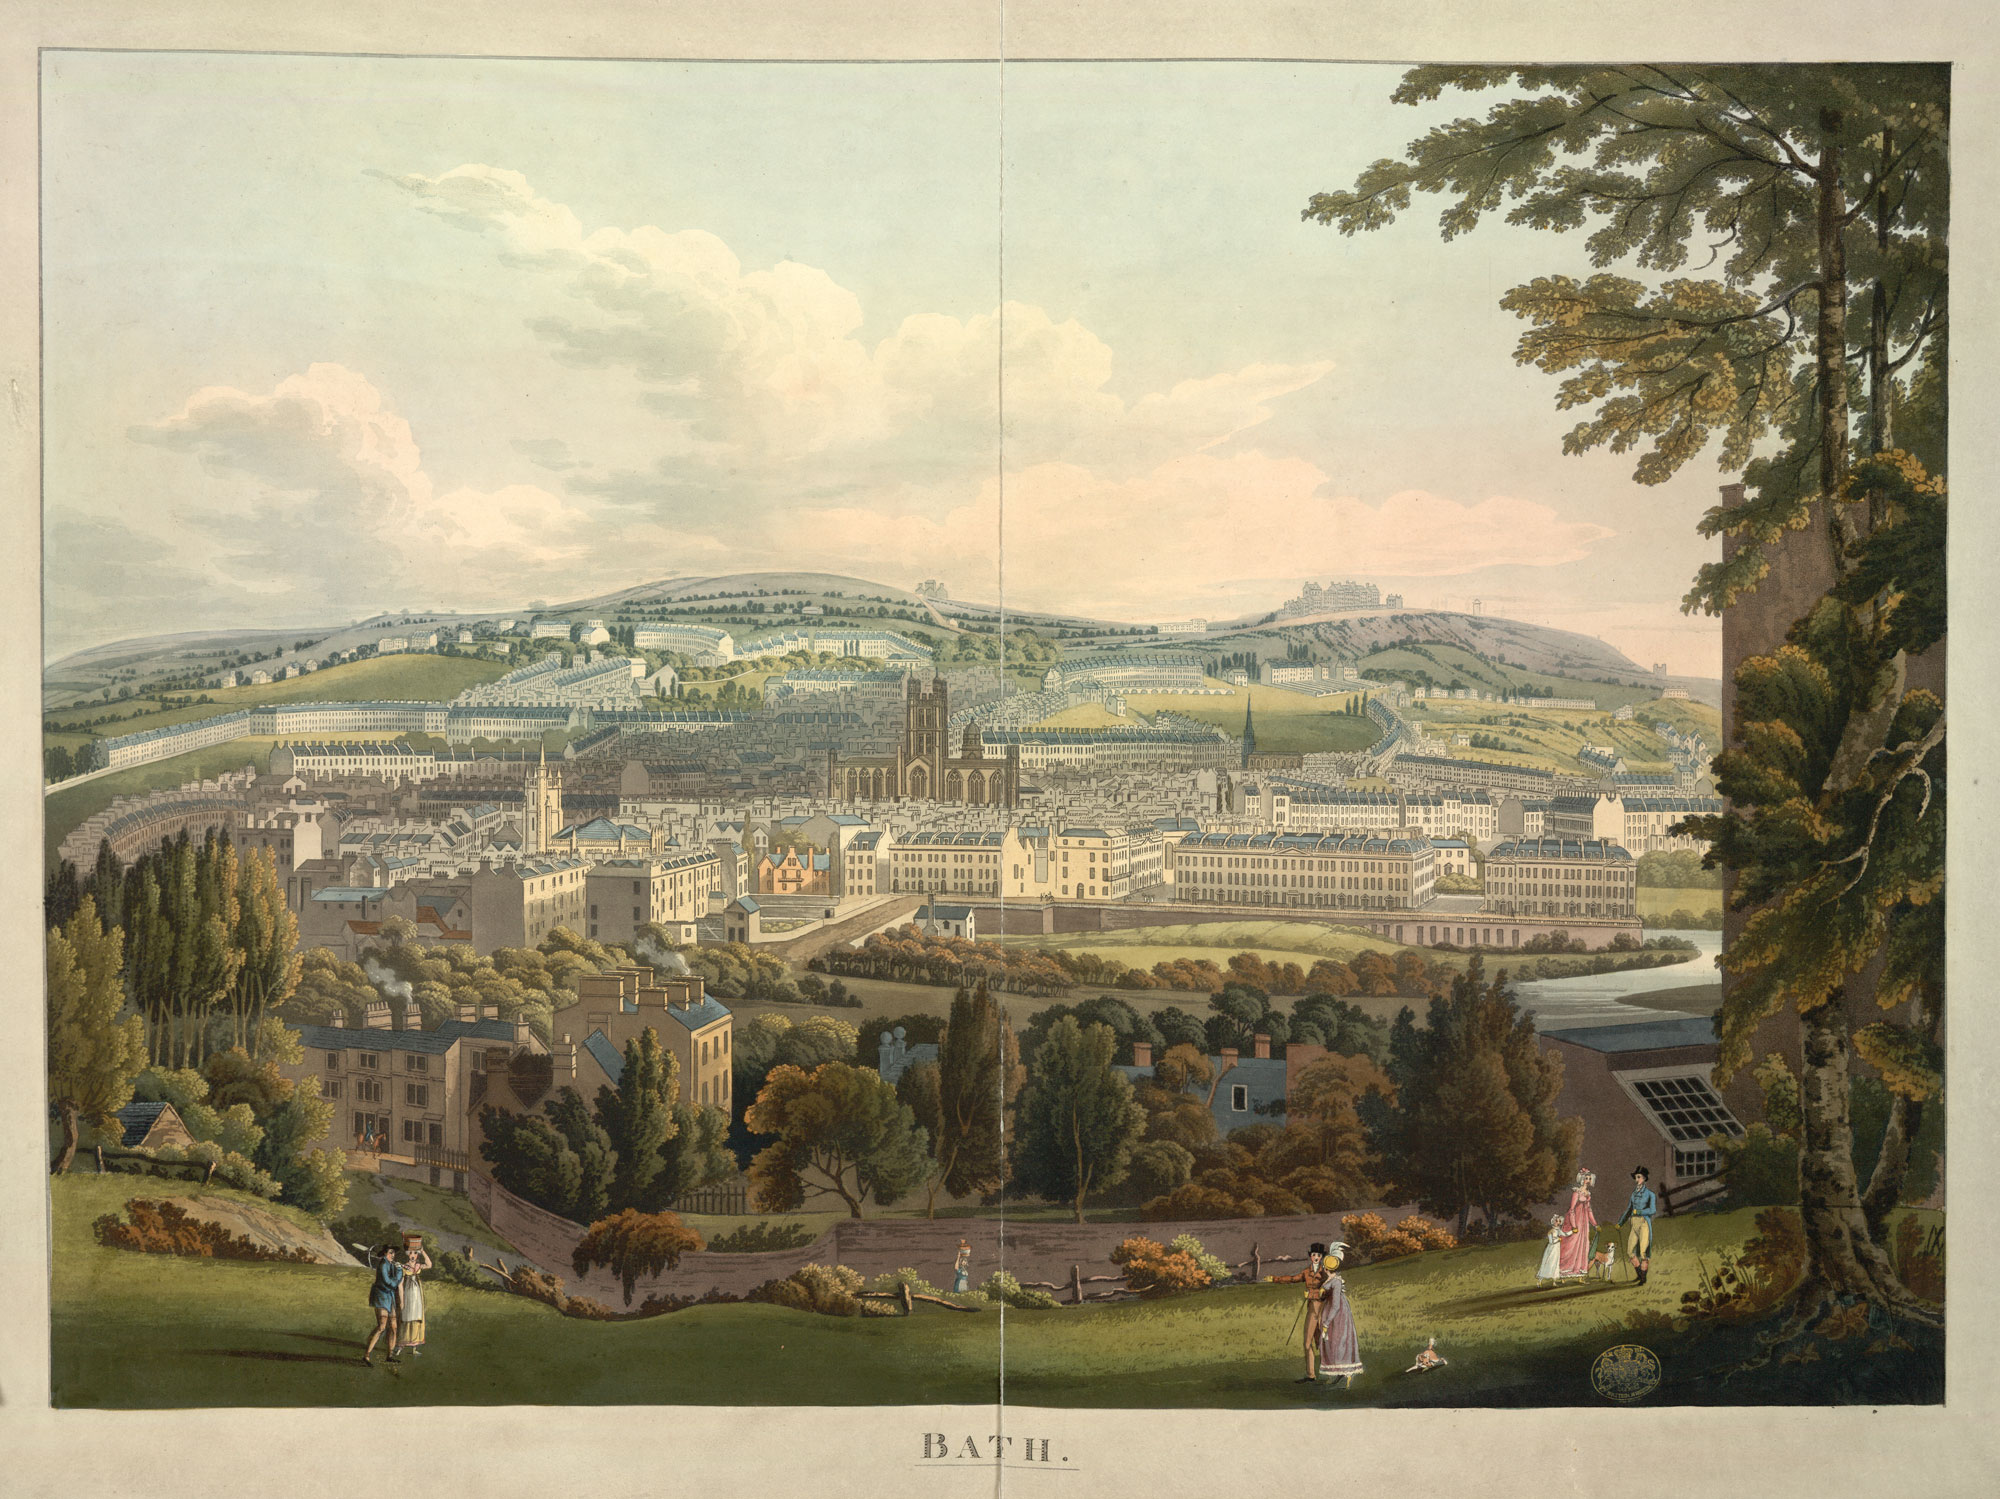 A view of Bath [page: 0]